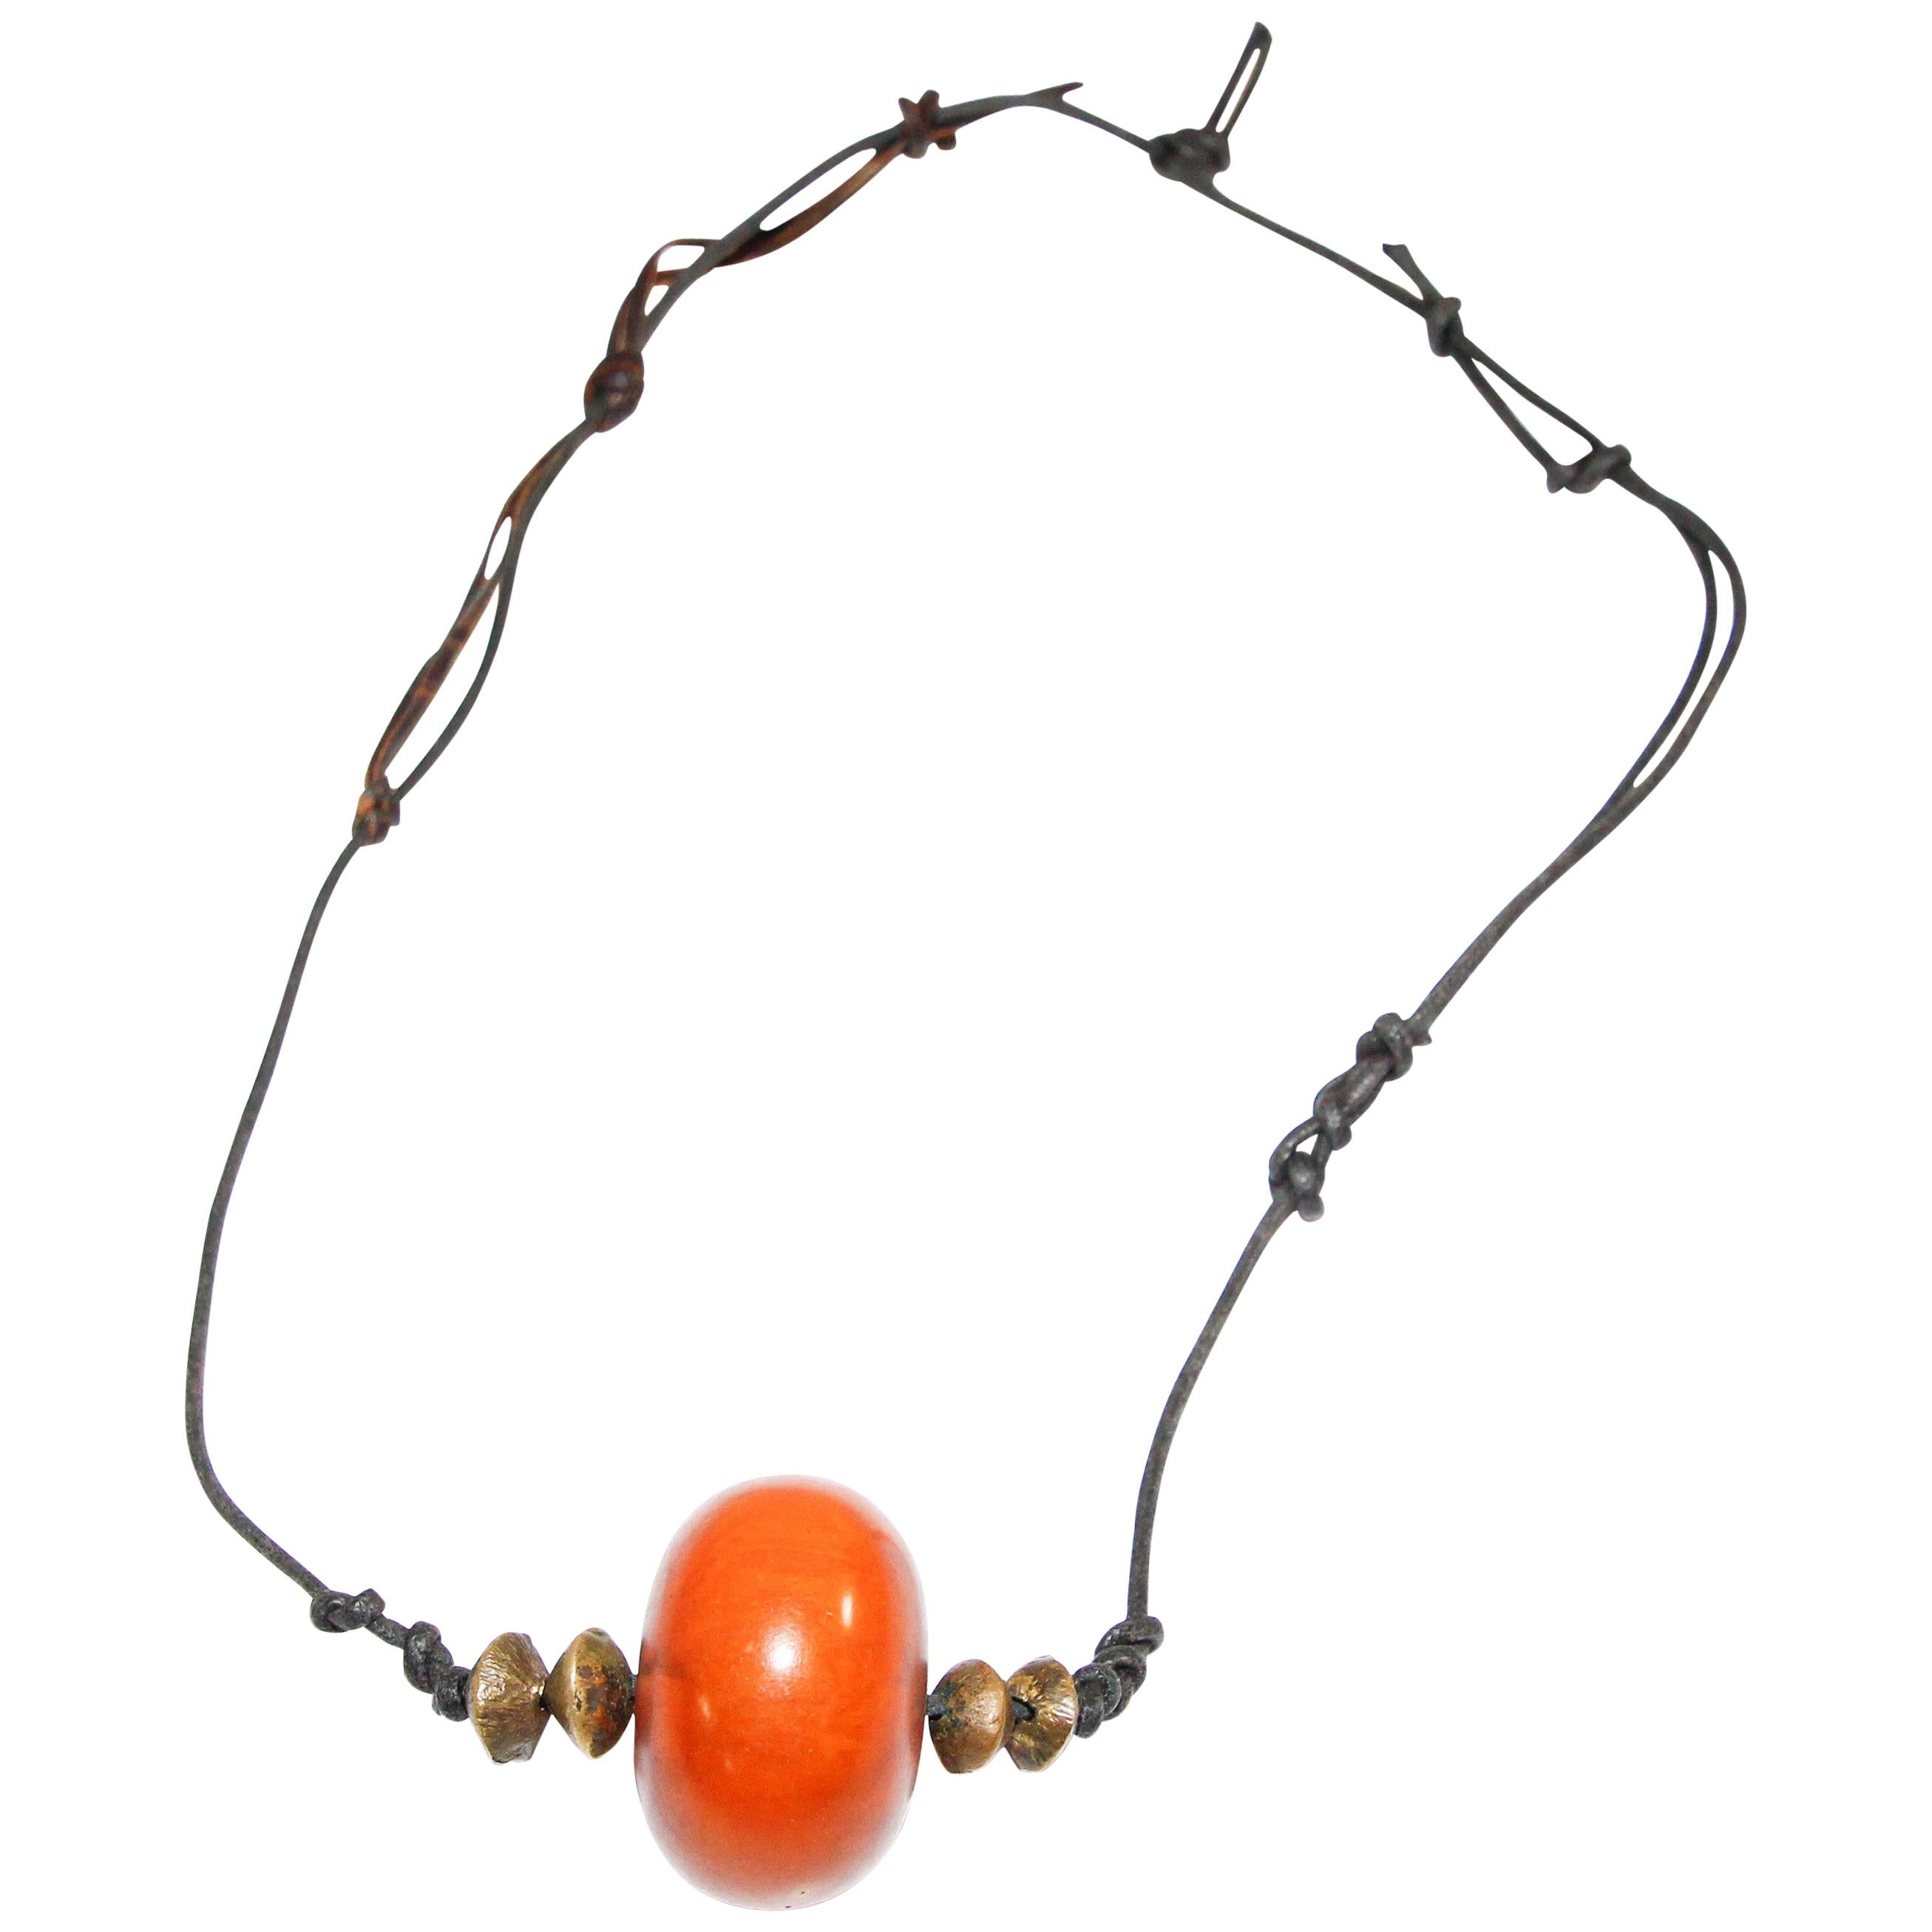 Moroccan Tribal Necklace with One Large Amber Resin Bead